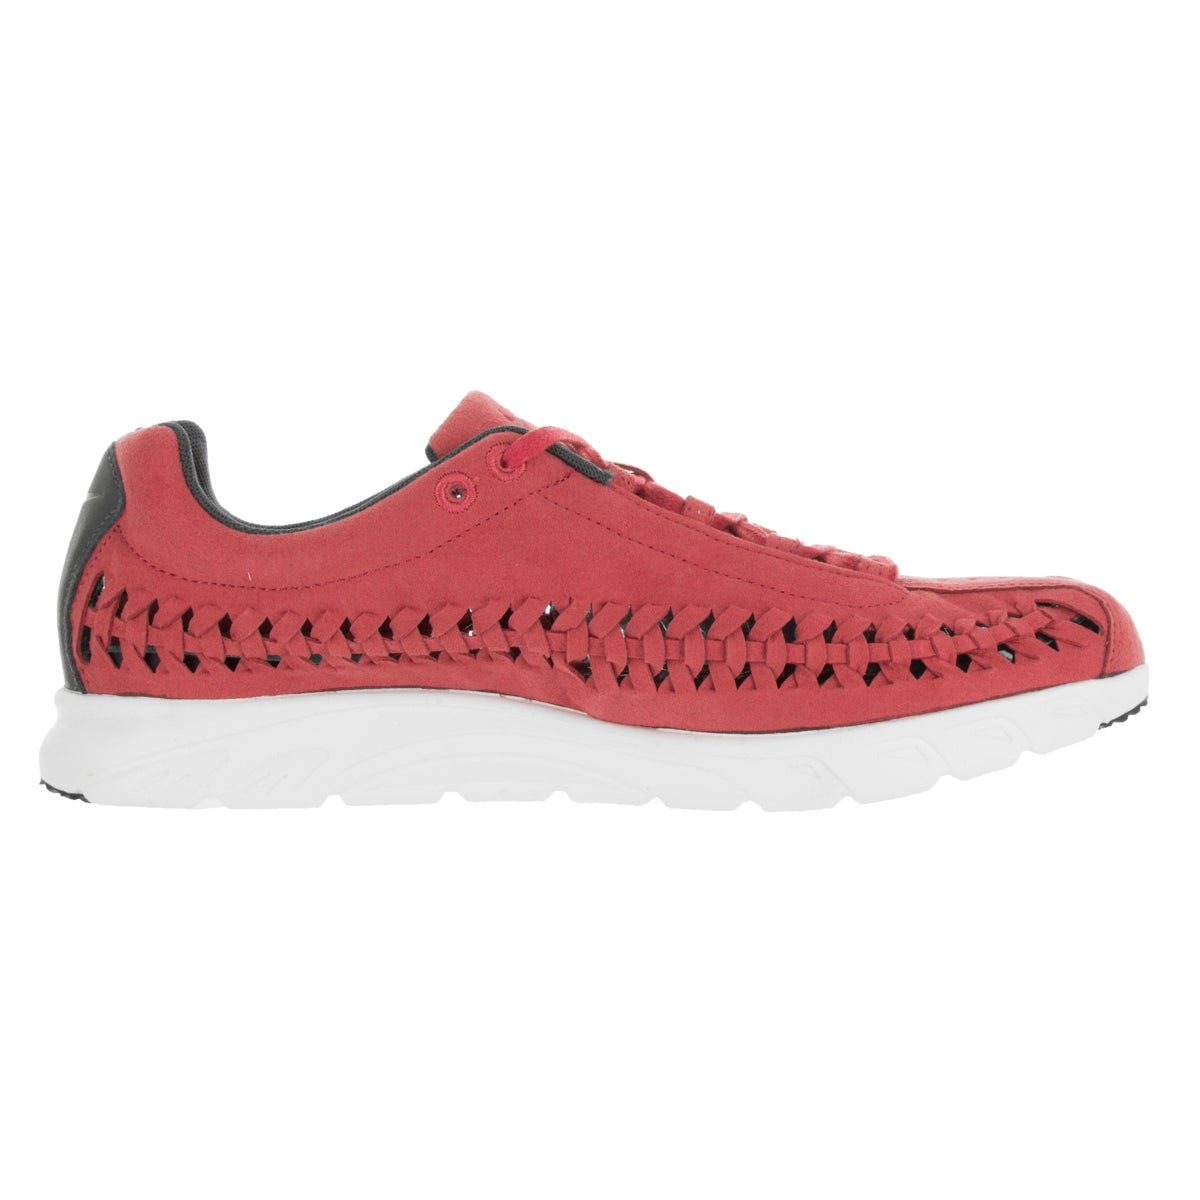 Shop Nike Men s Mayfly Woven Terra Red Casual Shoes - Free Shipping Today -  Overstock.com - 13395720 c8e15f58f